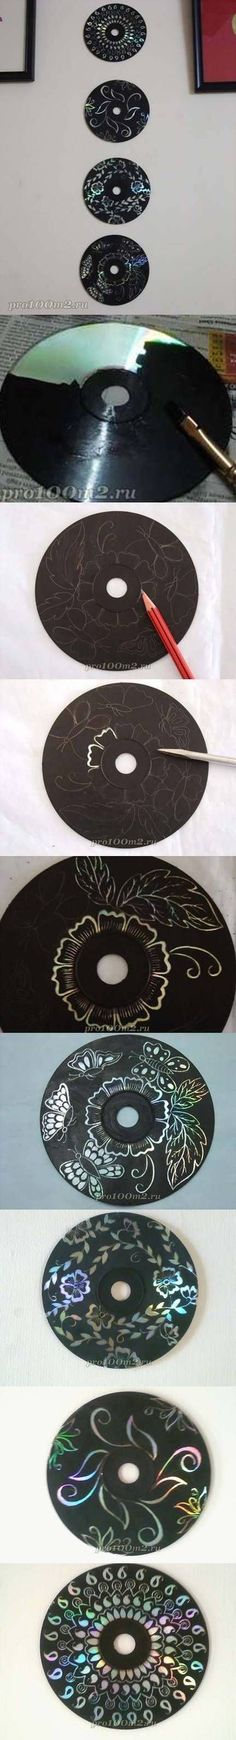 Recycled CDs - Paint black, pencil designs, paint designs! Art-cycle old damaged CD/DVDs.